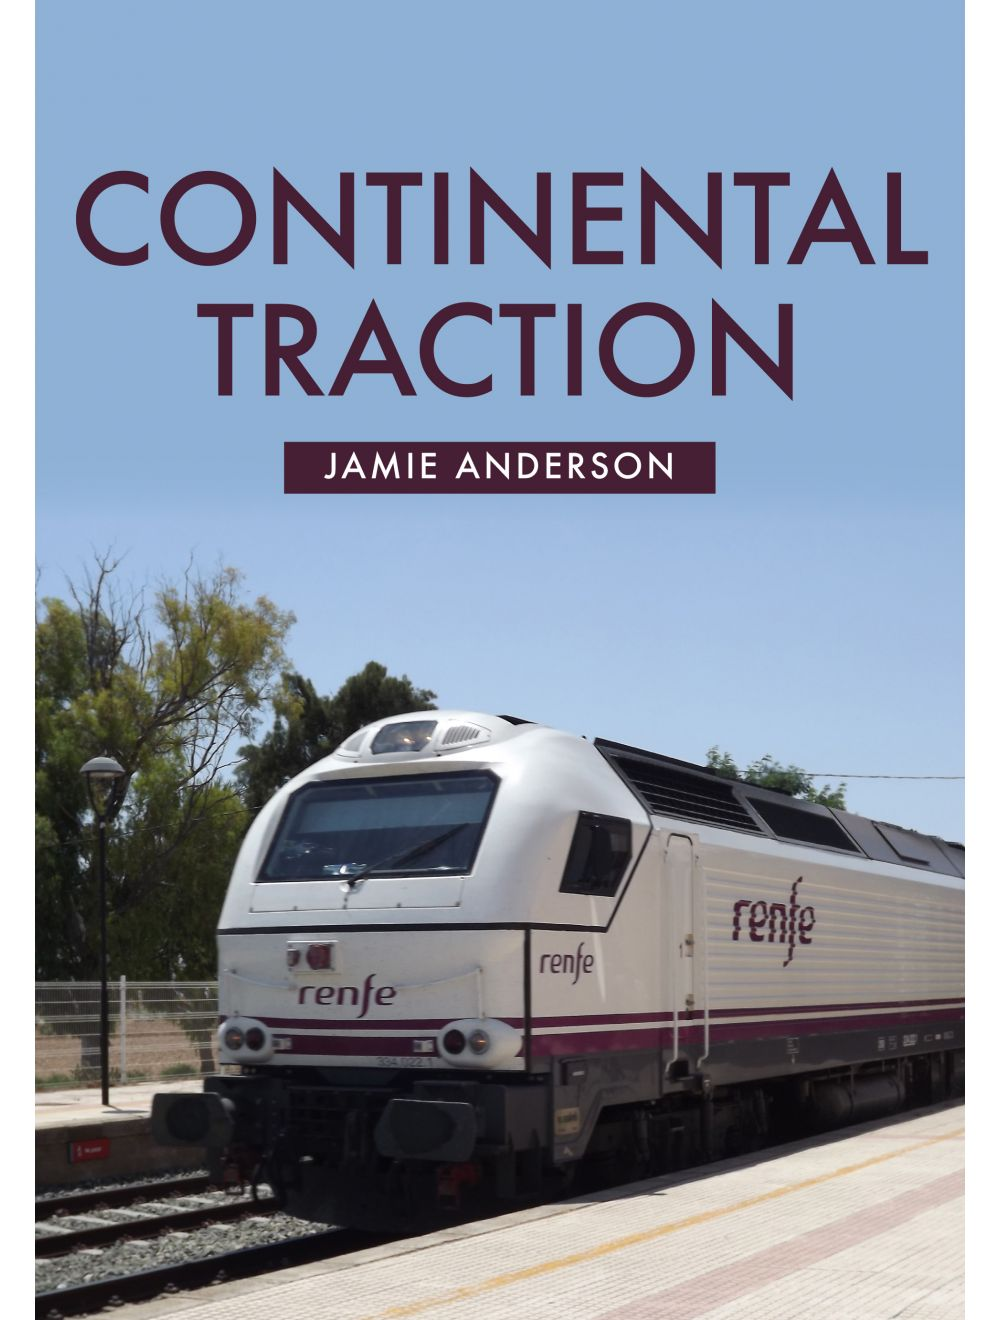 Jamie-Anderson-Continental-Traction-book